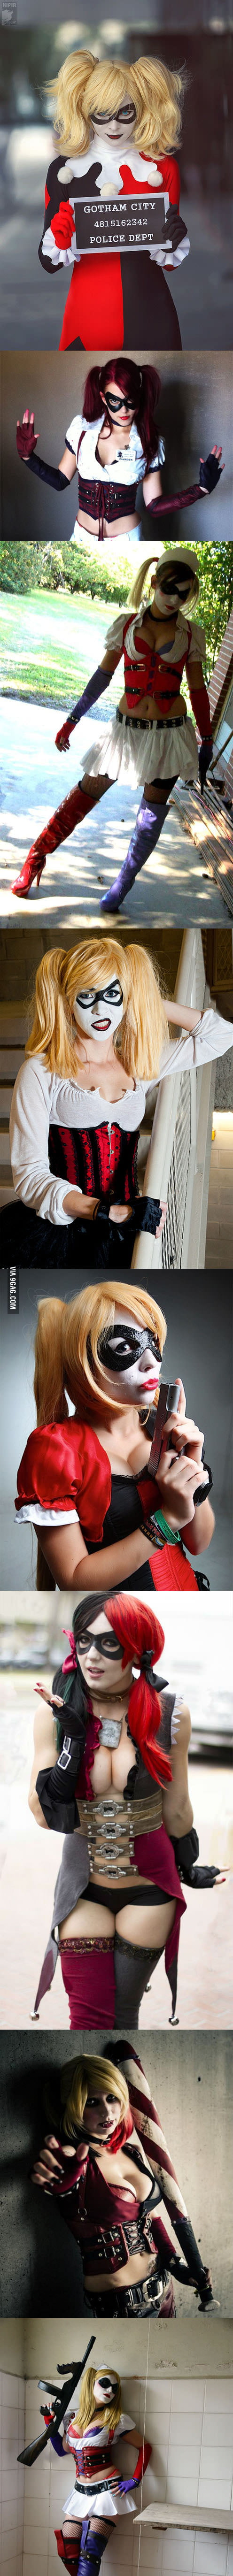 Harley Quinn in reality